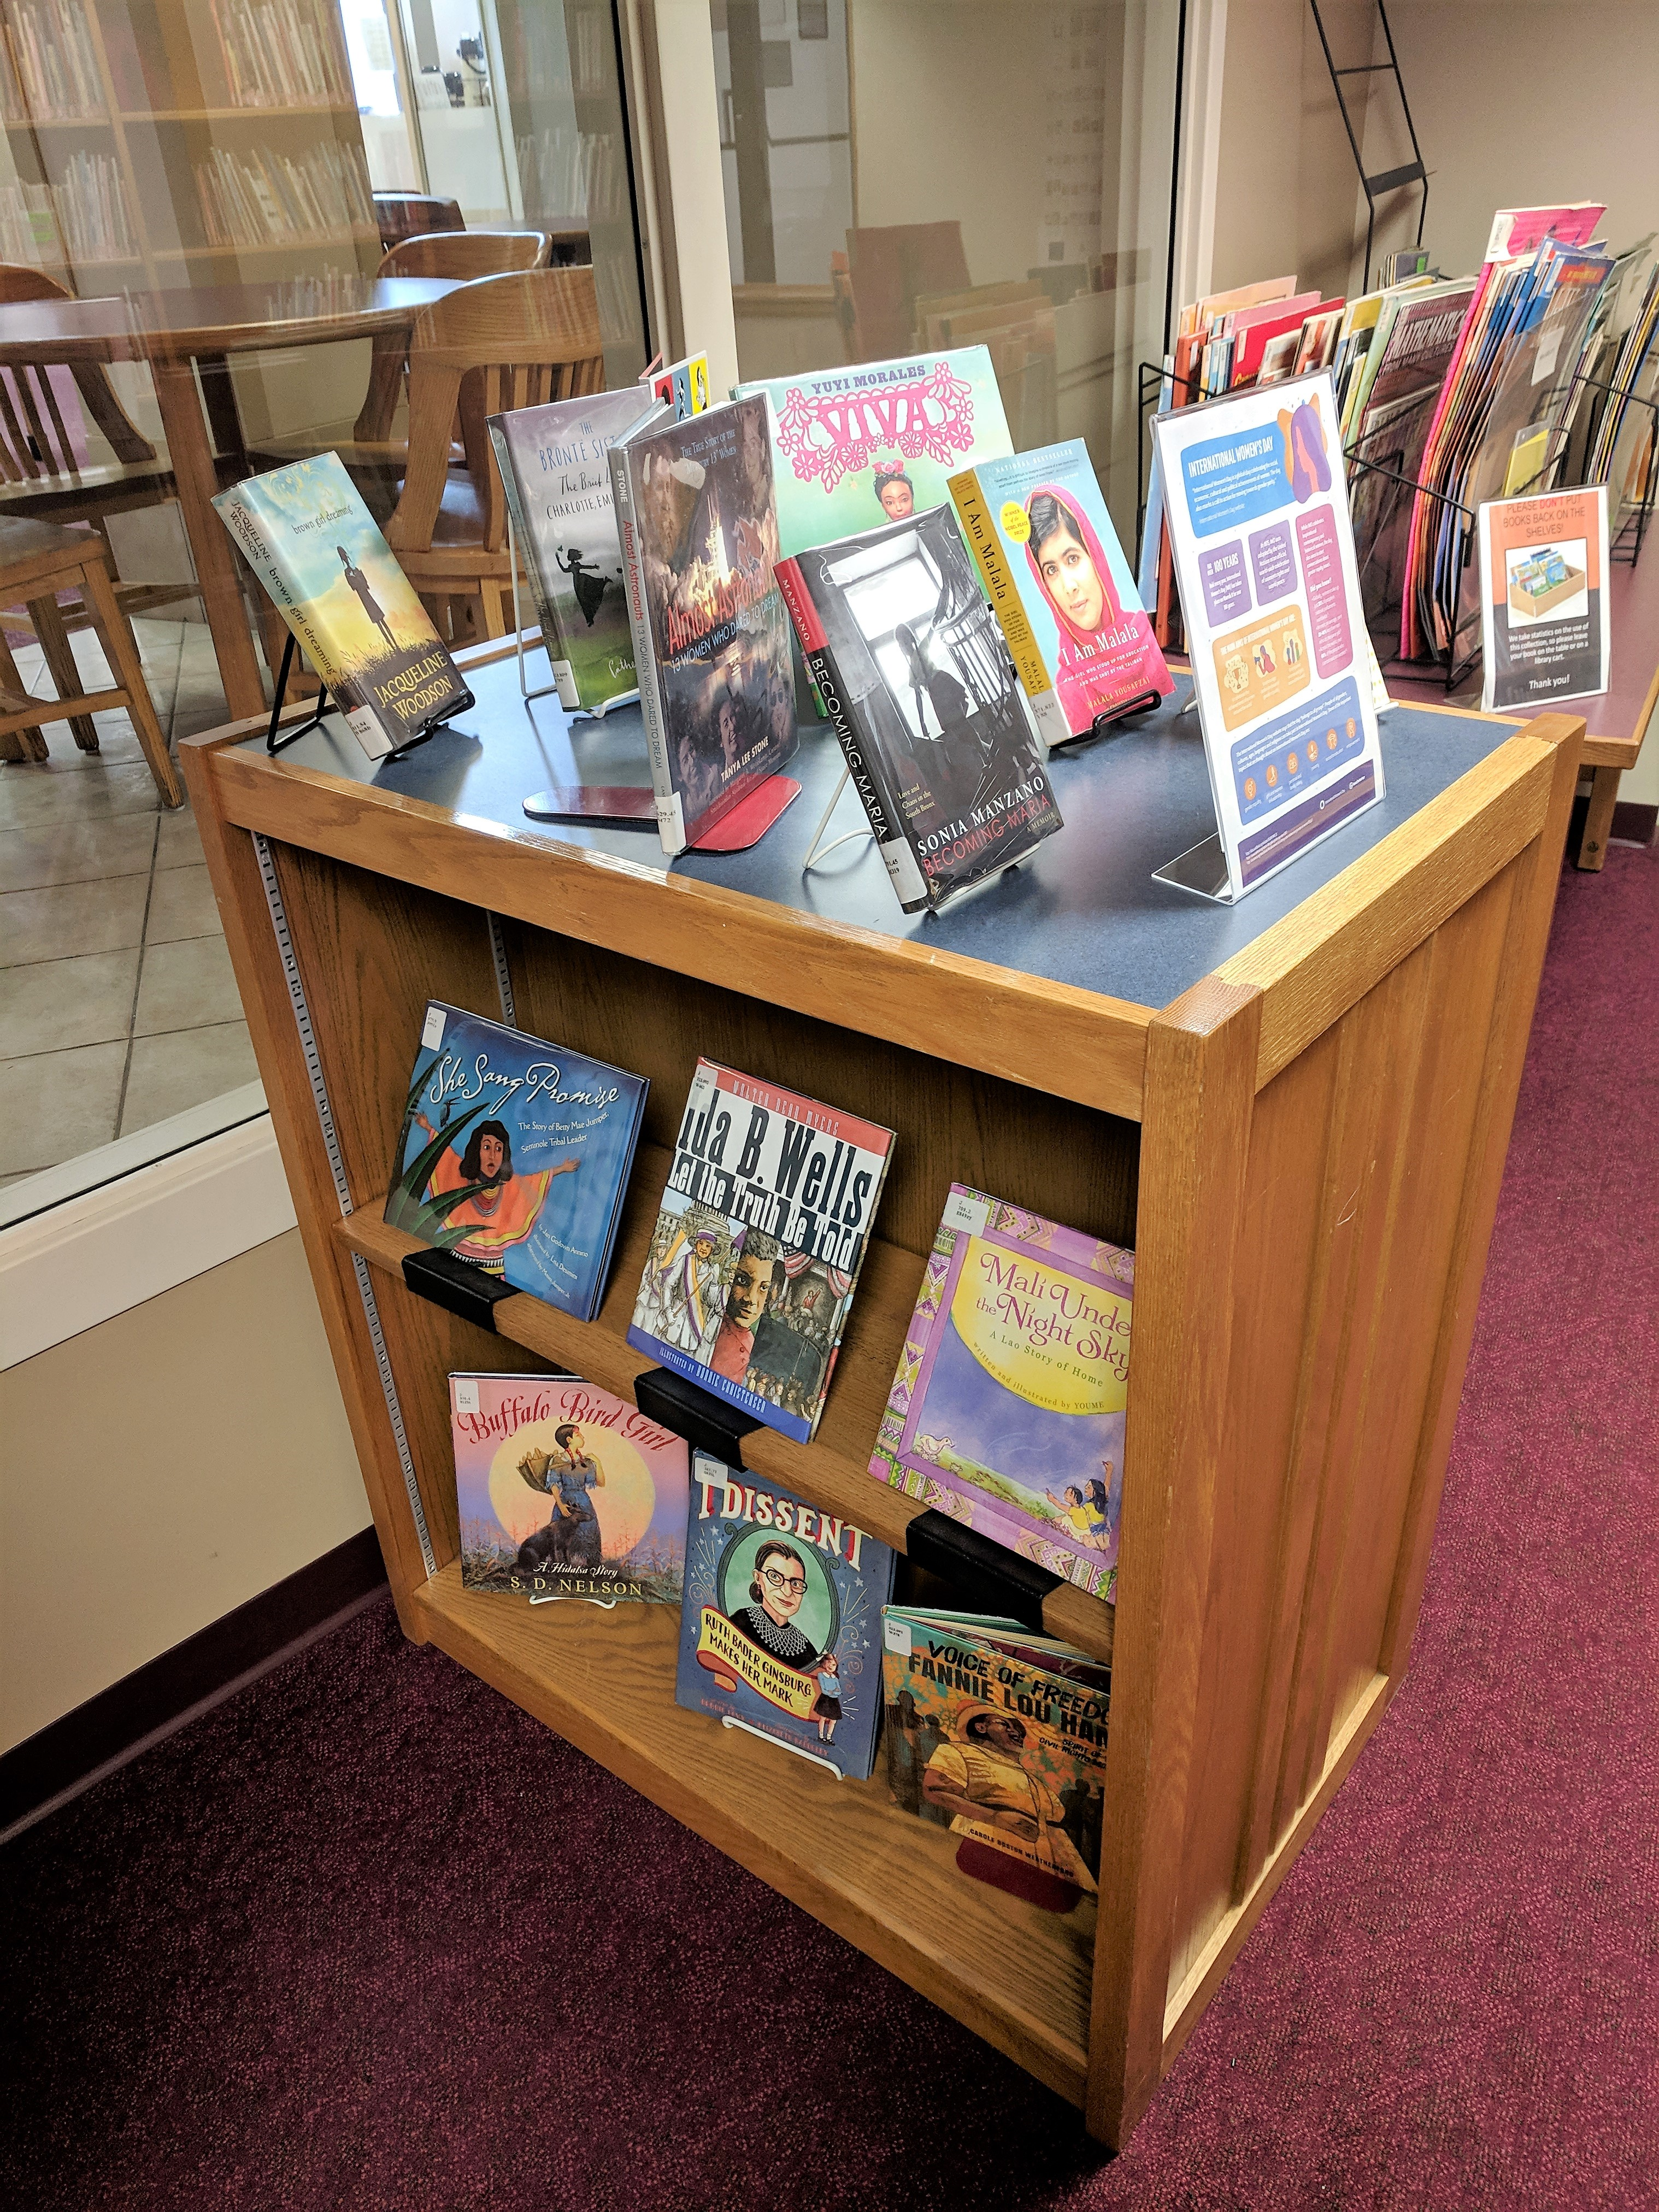 image is of International Women's Day book display at Vogel Library